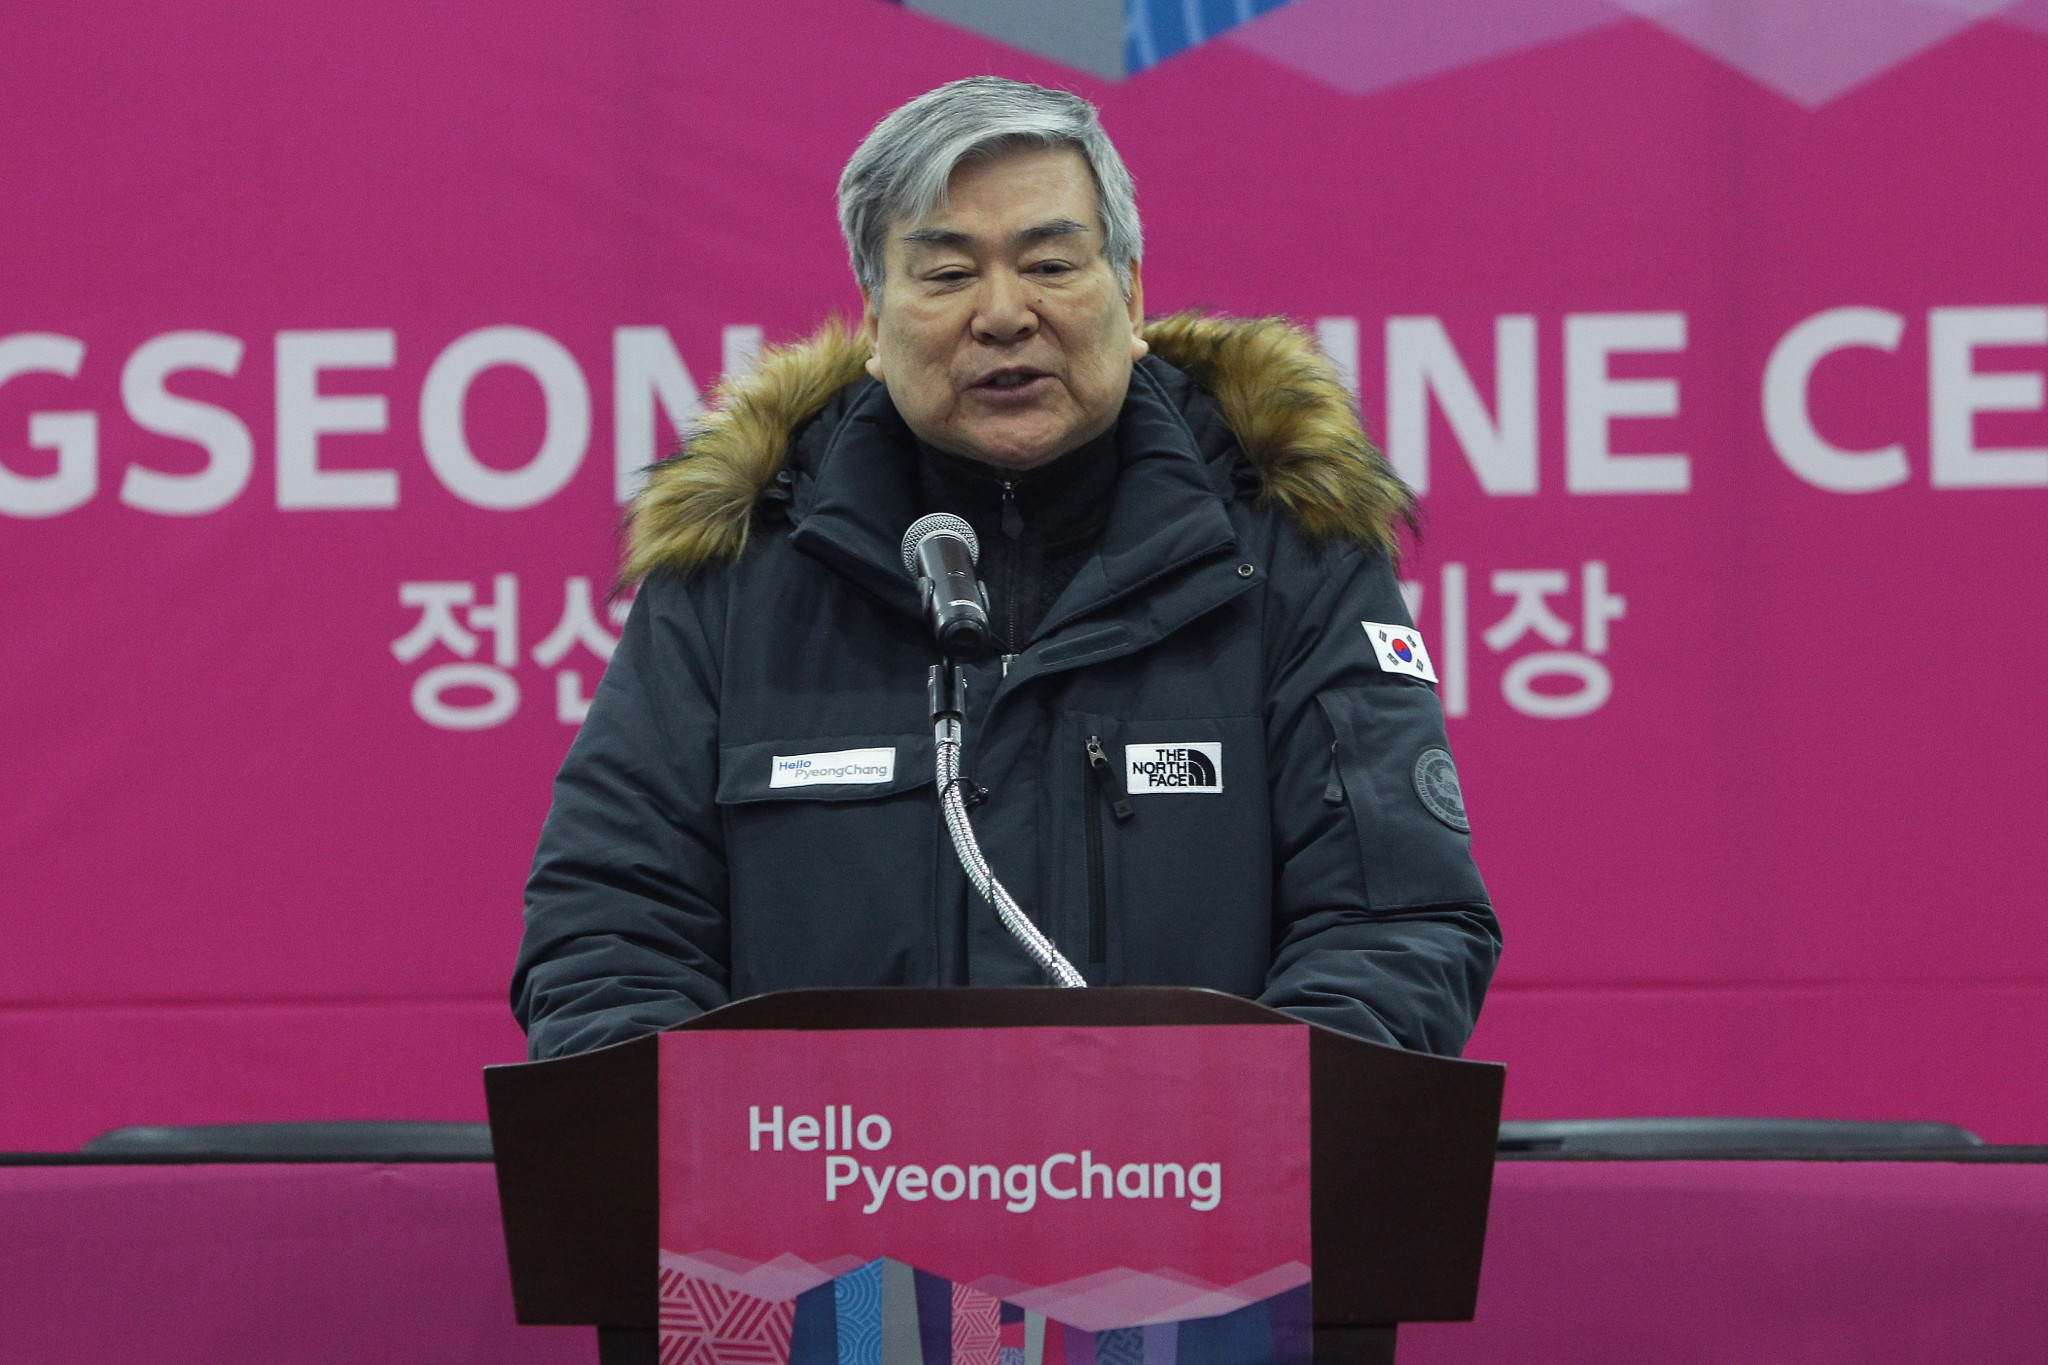 Yang Ho Cho returned briefly as President of the Organising Committee for Pyeongchang 2018 but was forced out in 2016 after being a victim of the political cronyism scandal which caused a crisis in South Korea ©Getty Images